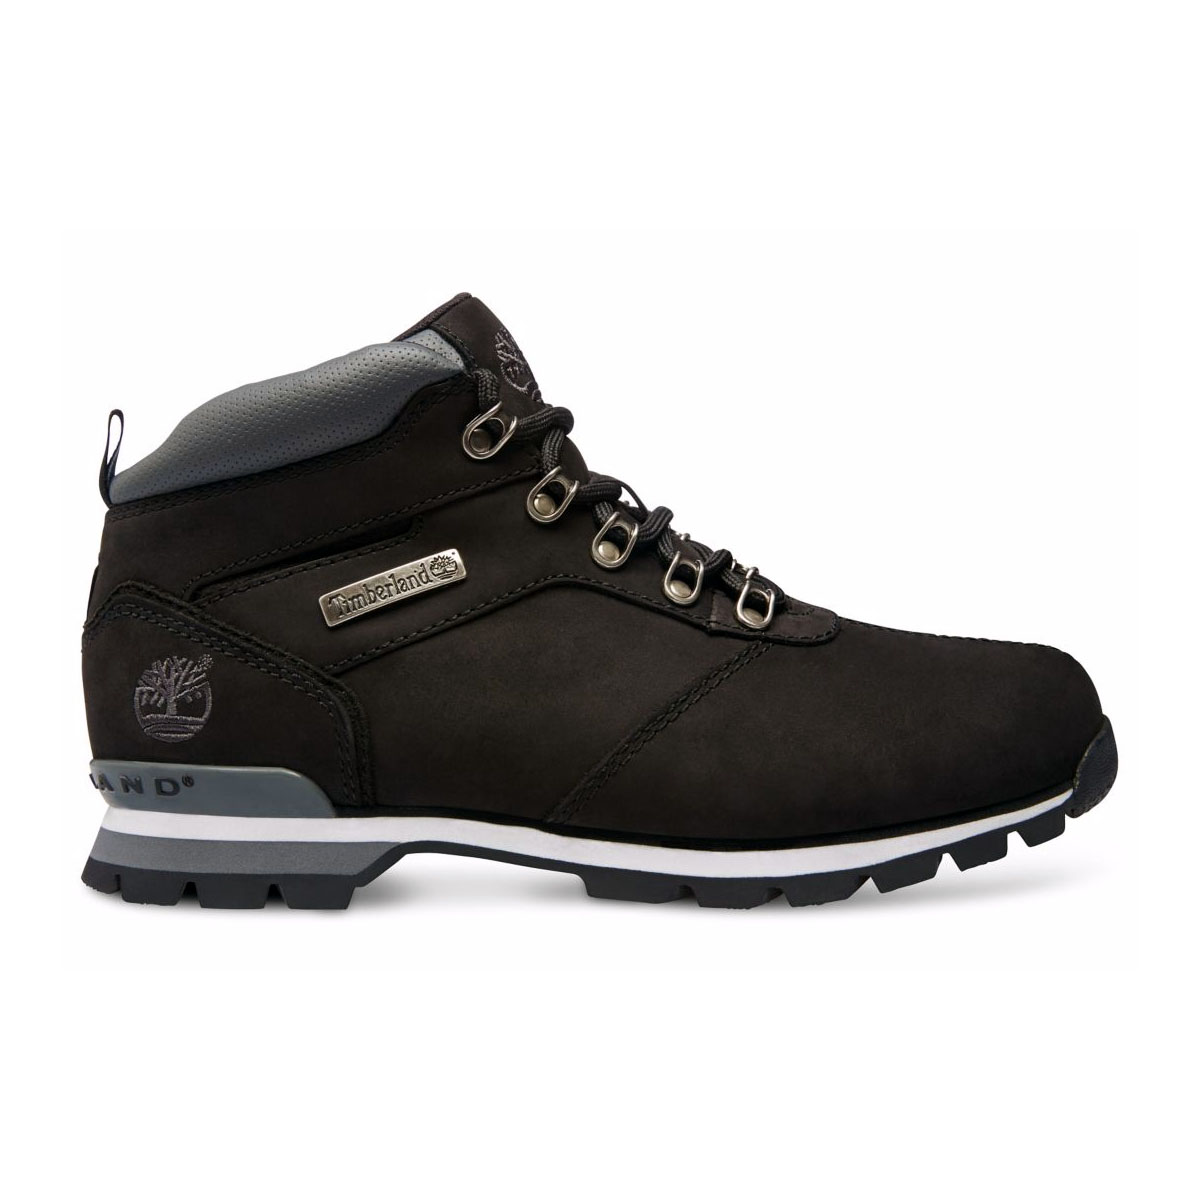 new timberland splitrock 2 mens leather classic ankle